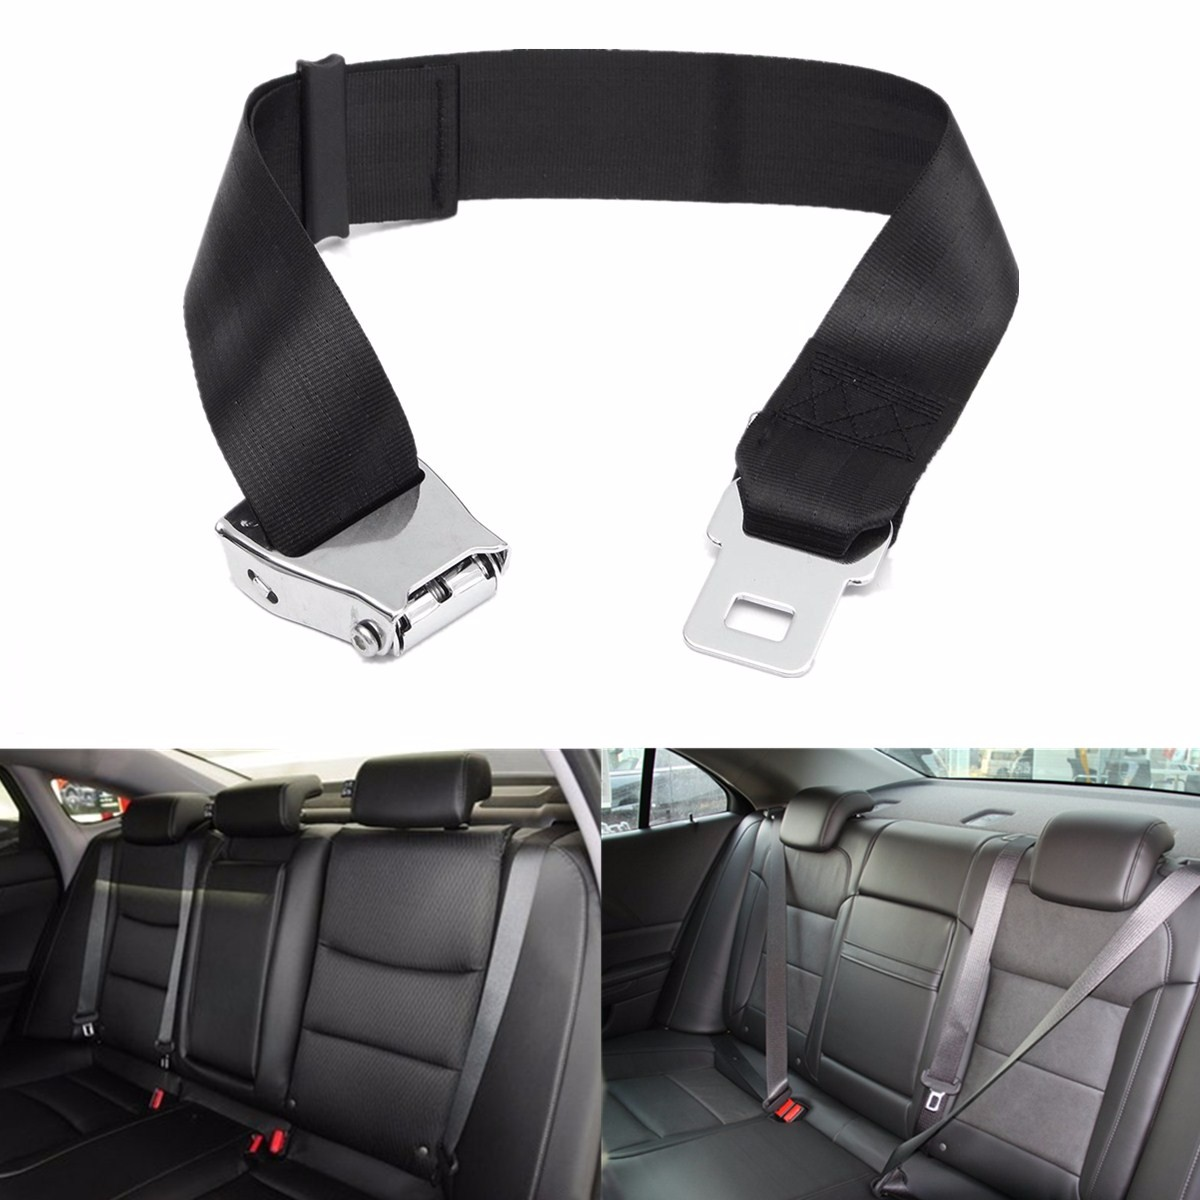 New Adjustable Black Airplane Seat Belt Extension Extender Buckle Aircraft Buckle Belt Extended High-strength Polyester Webbing image